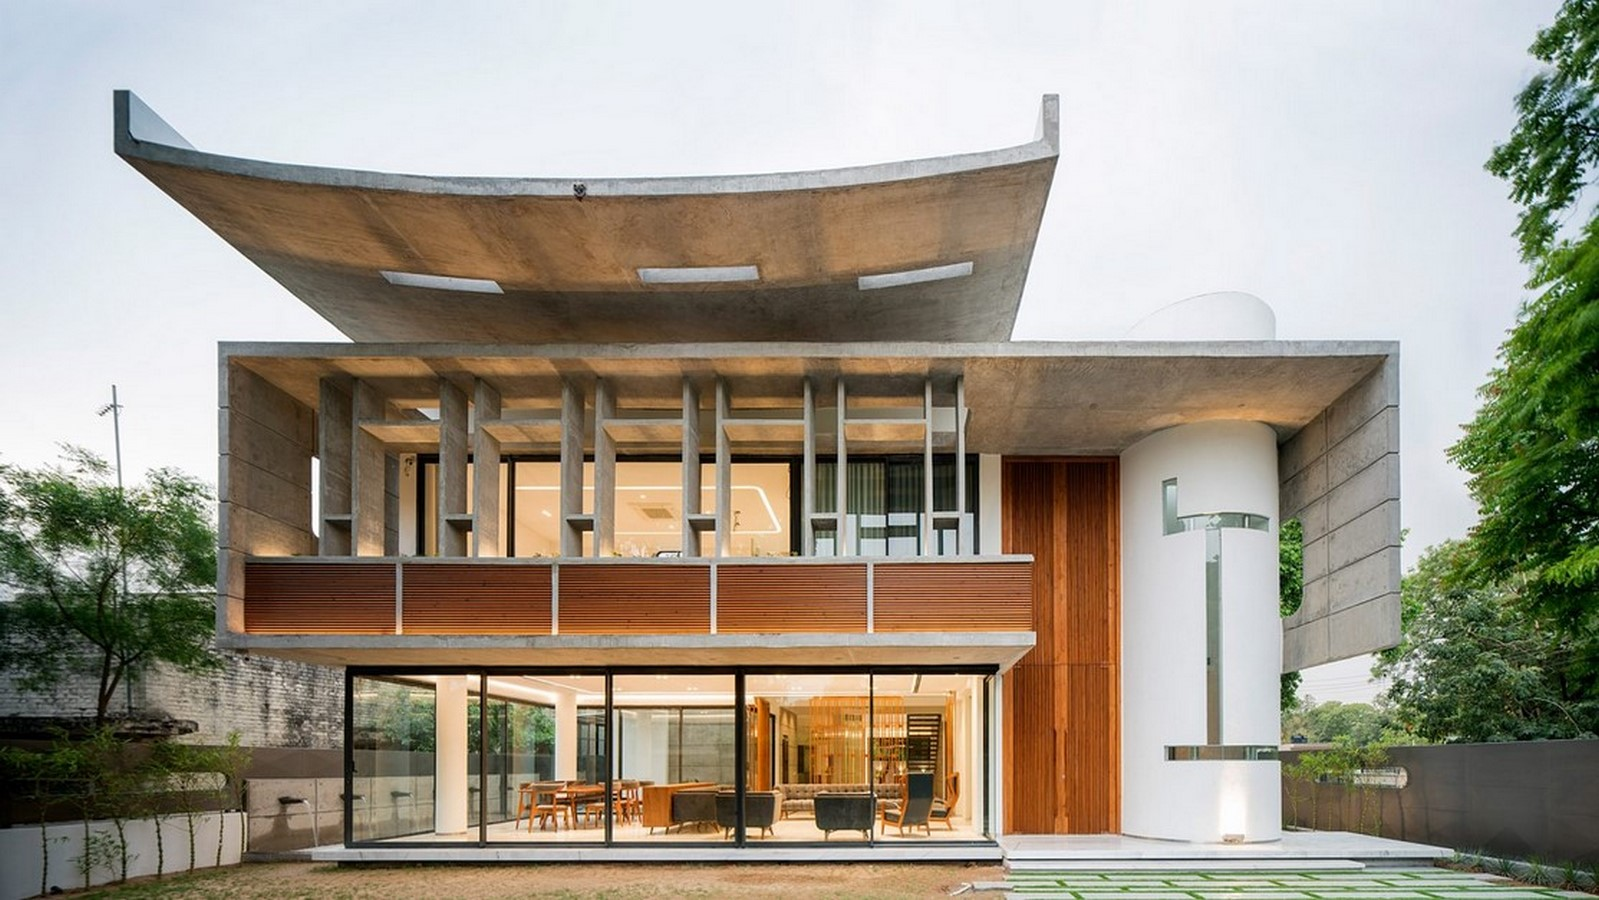 50 Examples of Modern concrete homes - Sheet3